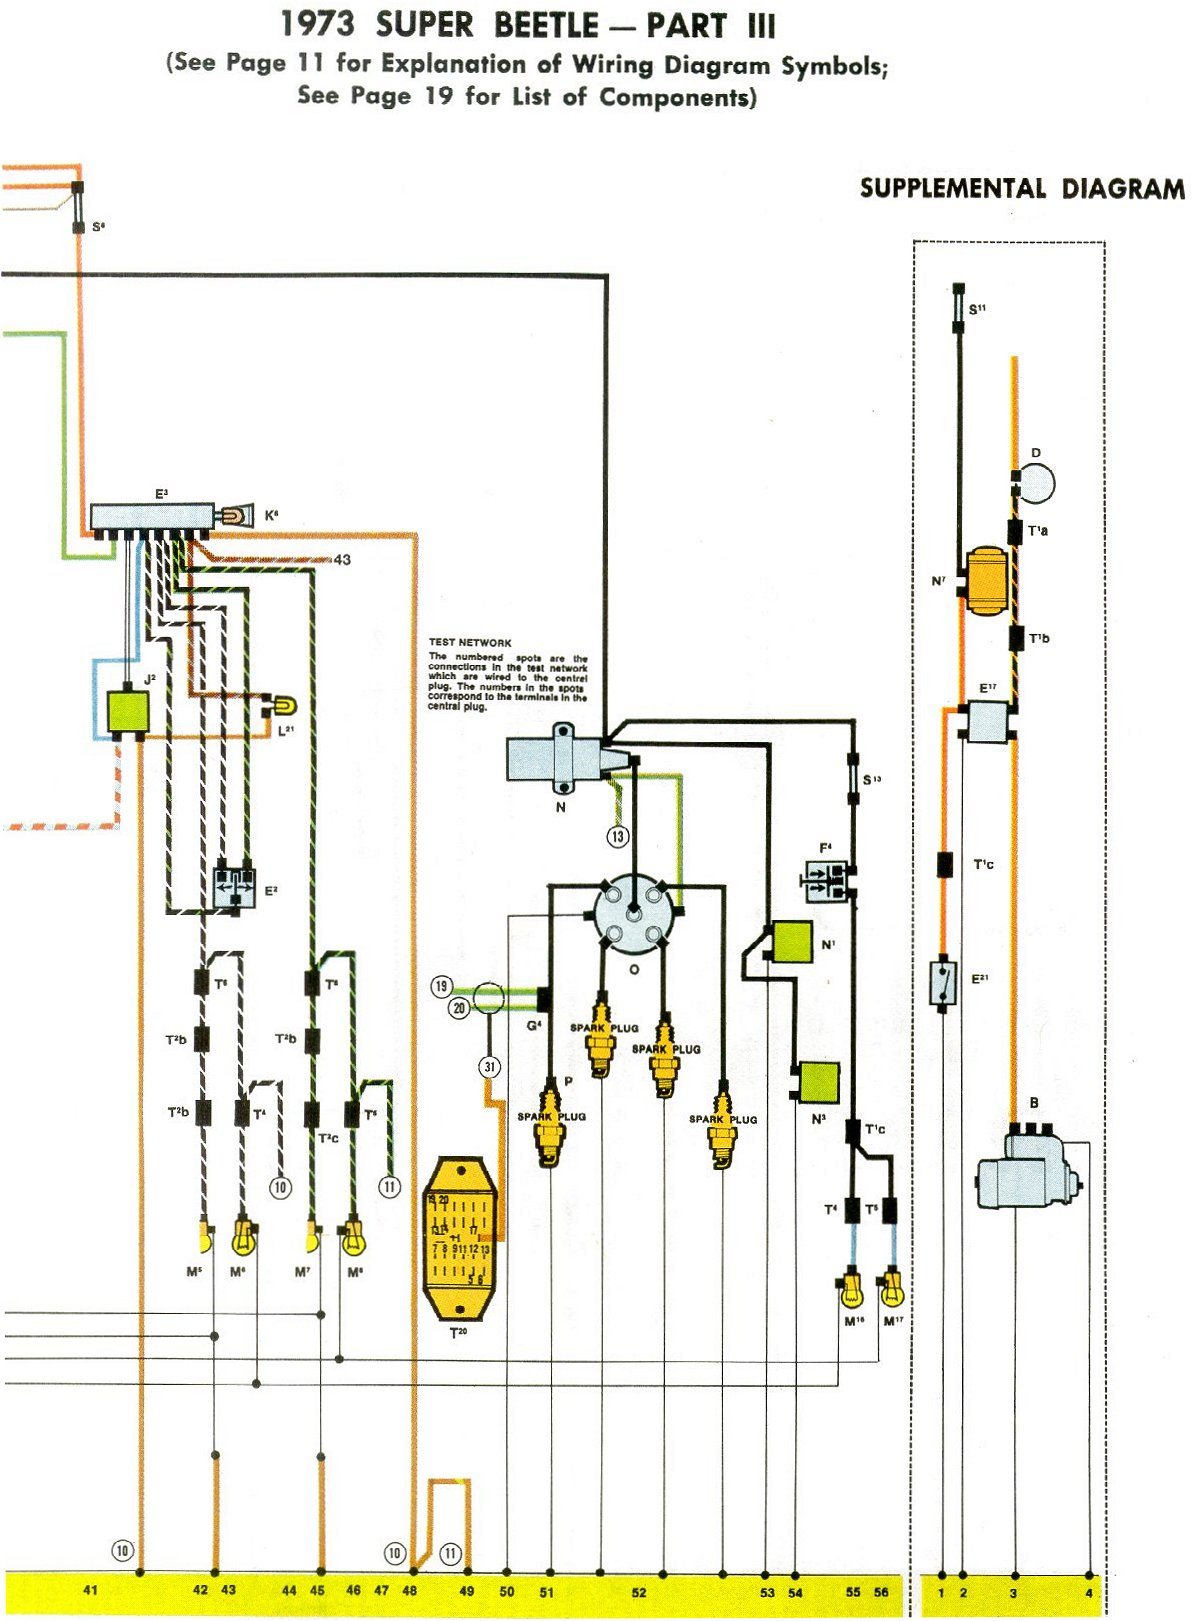 bug_73super_c 1973 super beetle wiring diagram thegoldenbug com 1972 vw beetle fuse box diagram at nearapp.co